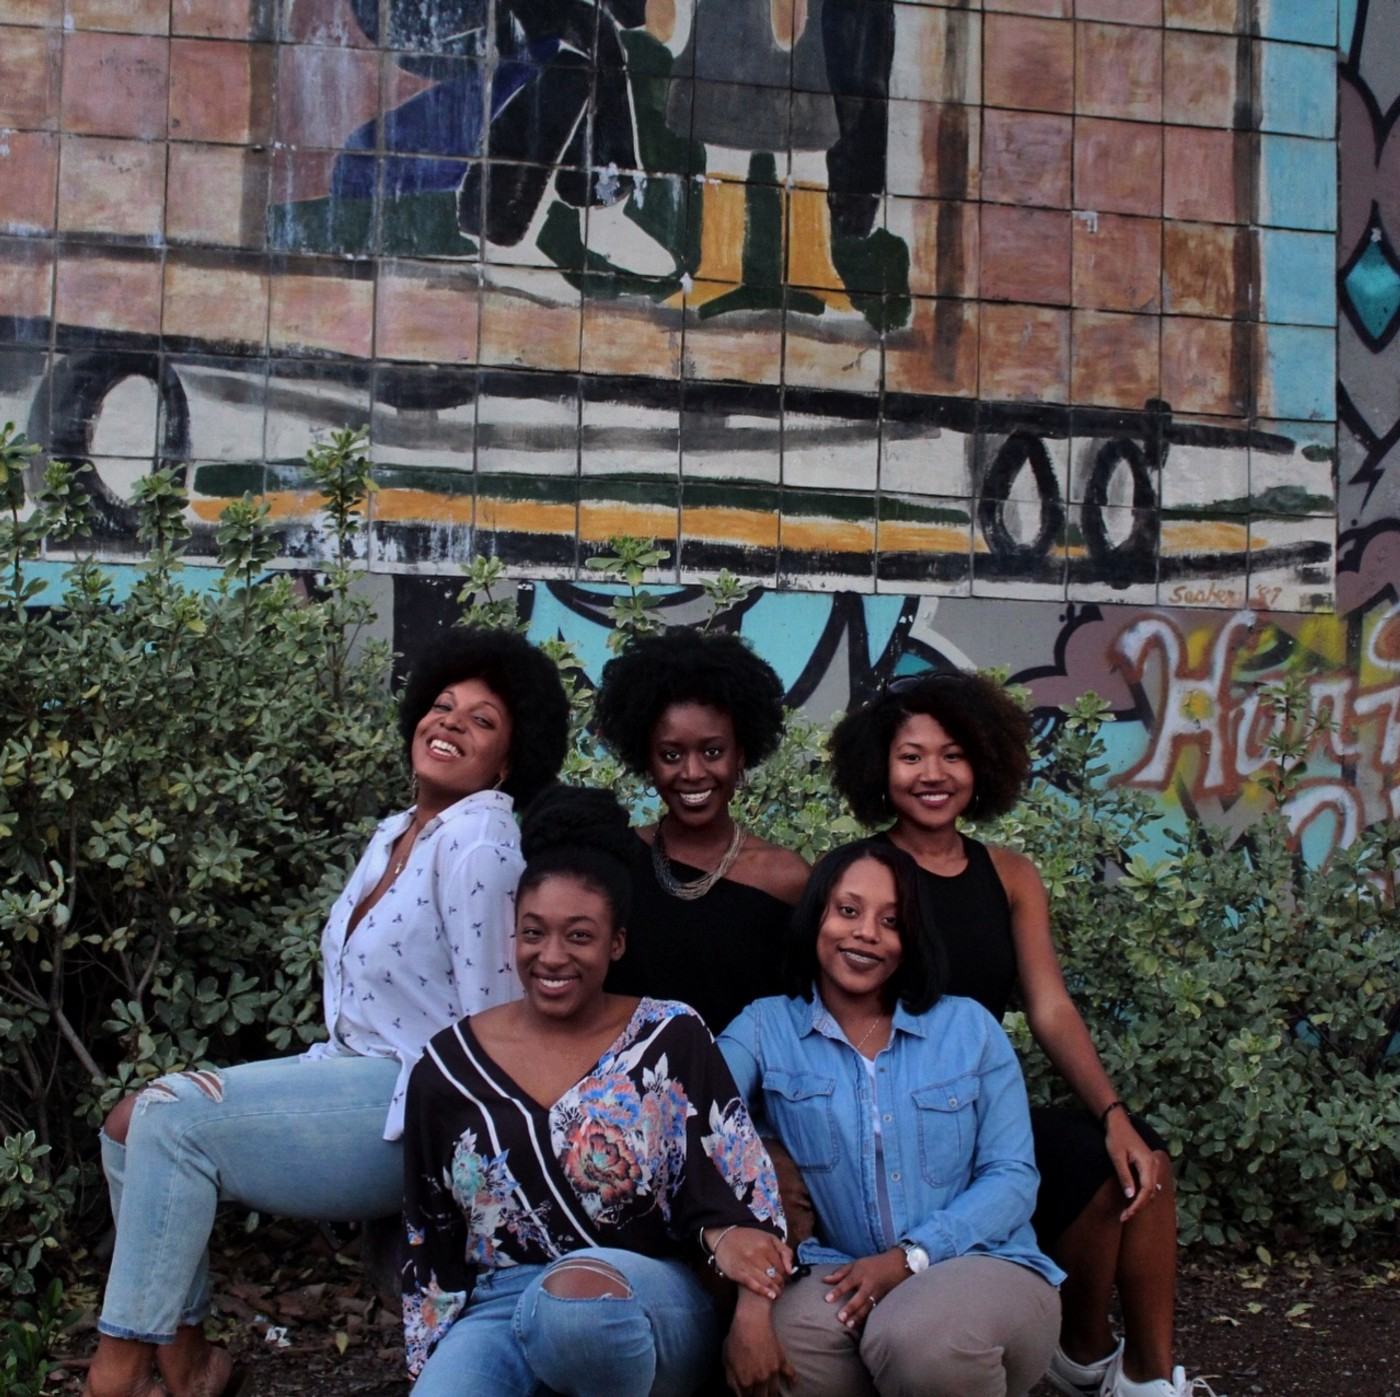 A group of African American women taking a picture